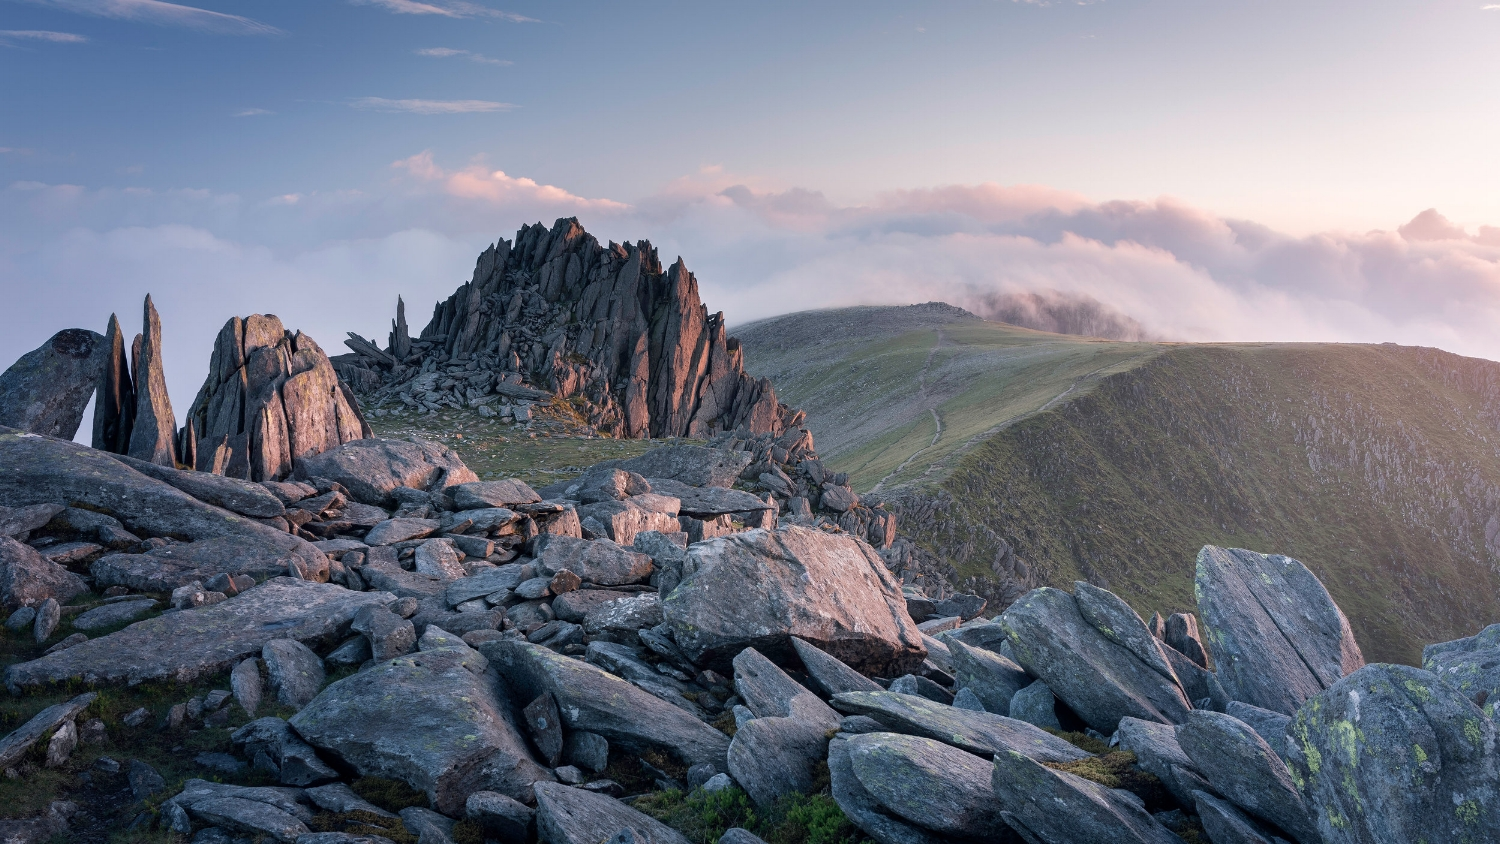 Castell y Gwynt - Canon 5D Mk IV with 16-35mm lens at 24mm, f/11, 1/13 sec, ISO 100